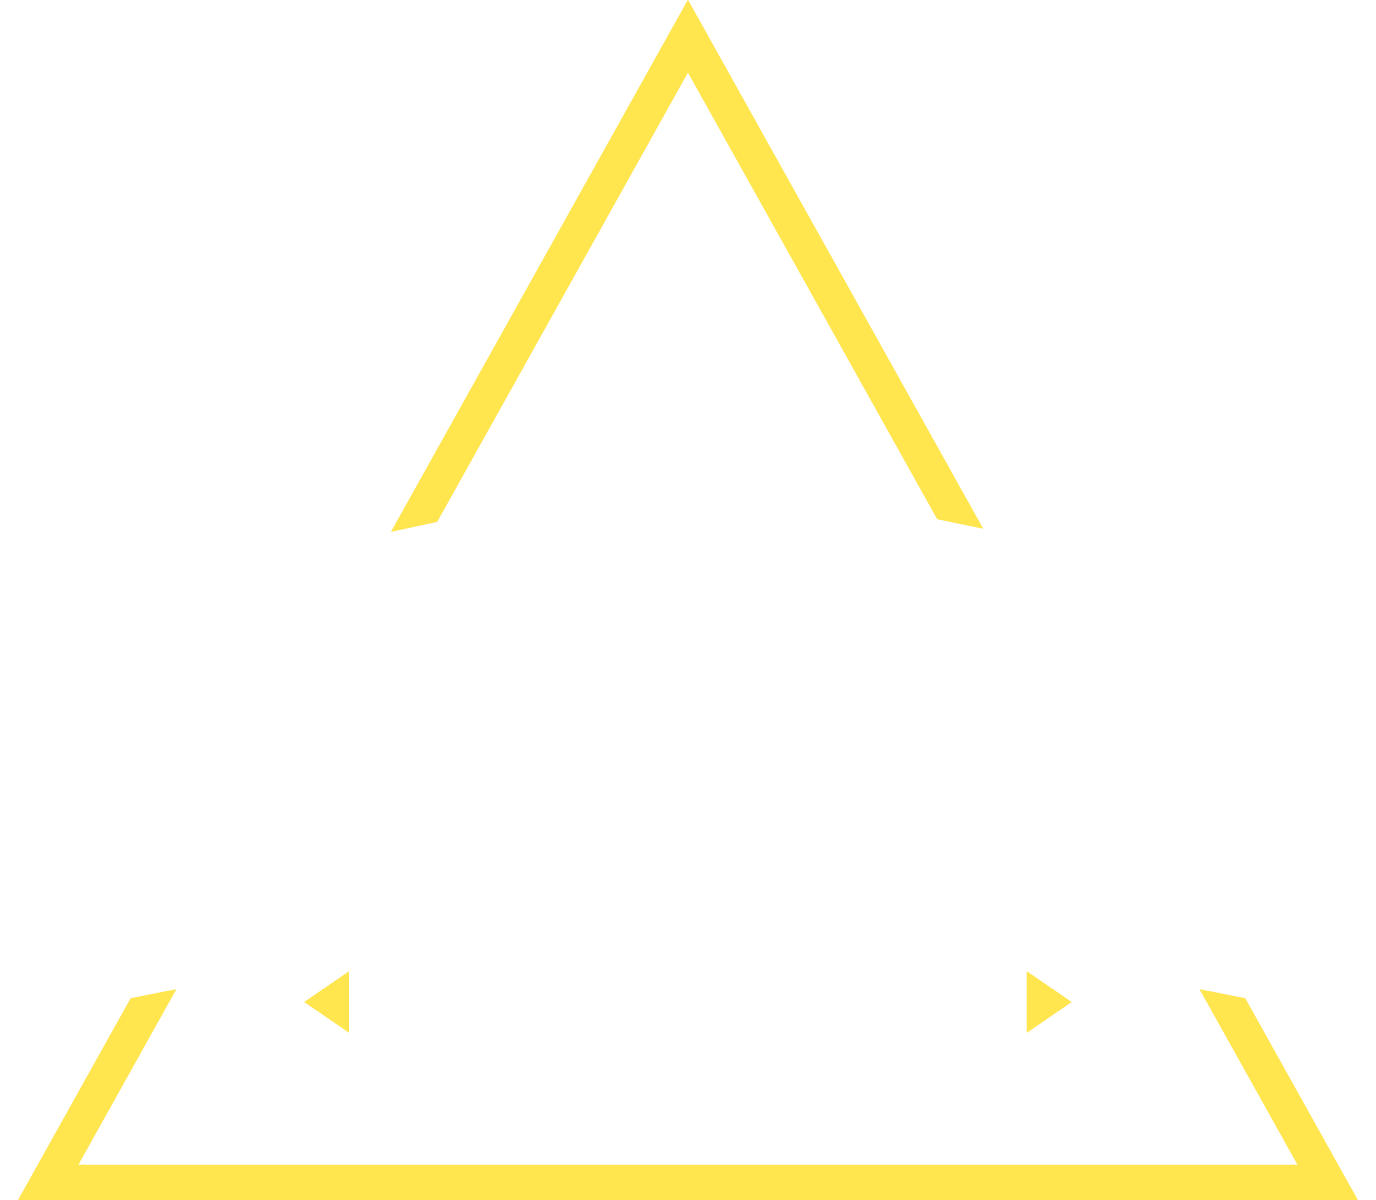 Amy Champagne Events | Fairfield County Wedding Planning and Coordination | CT Wedding Planner and Coordinator | New Haven County Wedding Planning and Coordination